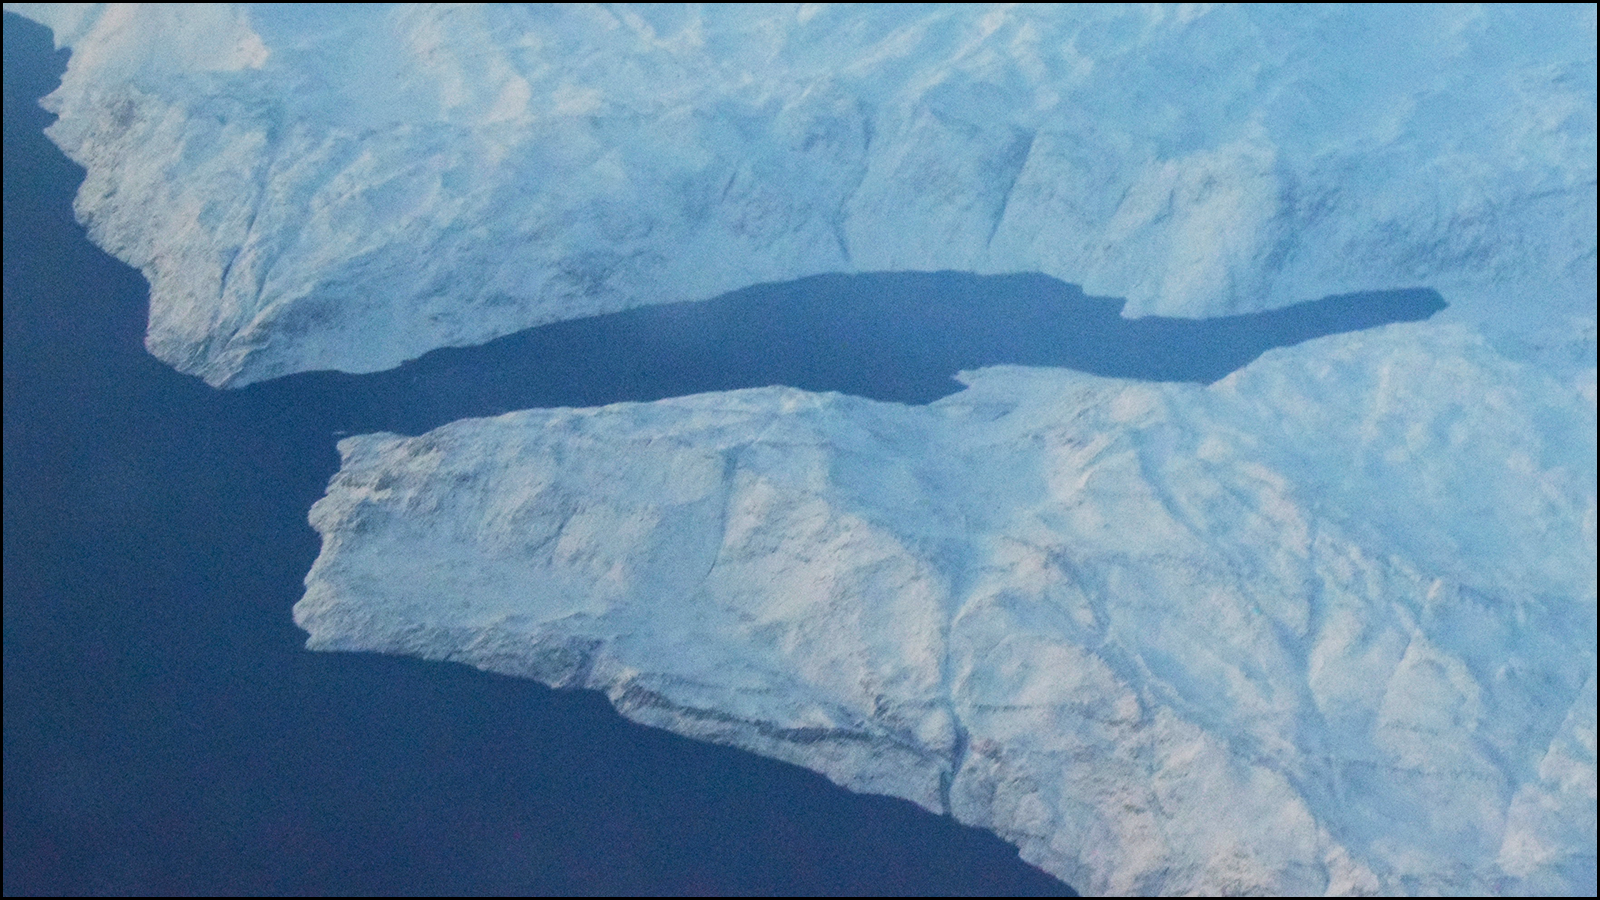 one day i will go visit greenland.  from the air, it looks magnificent (c) mark somple 2019